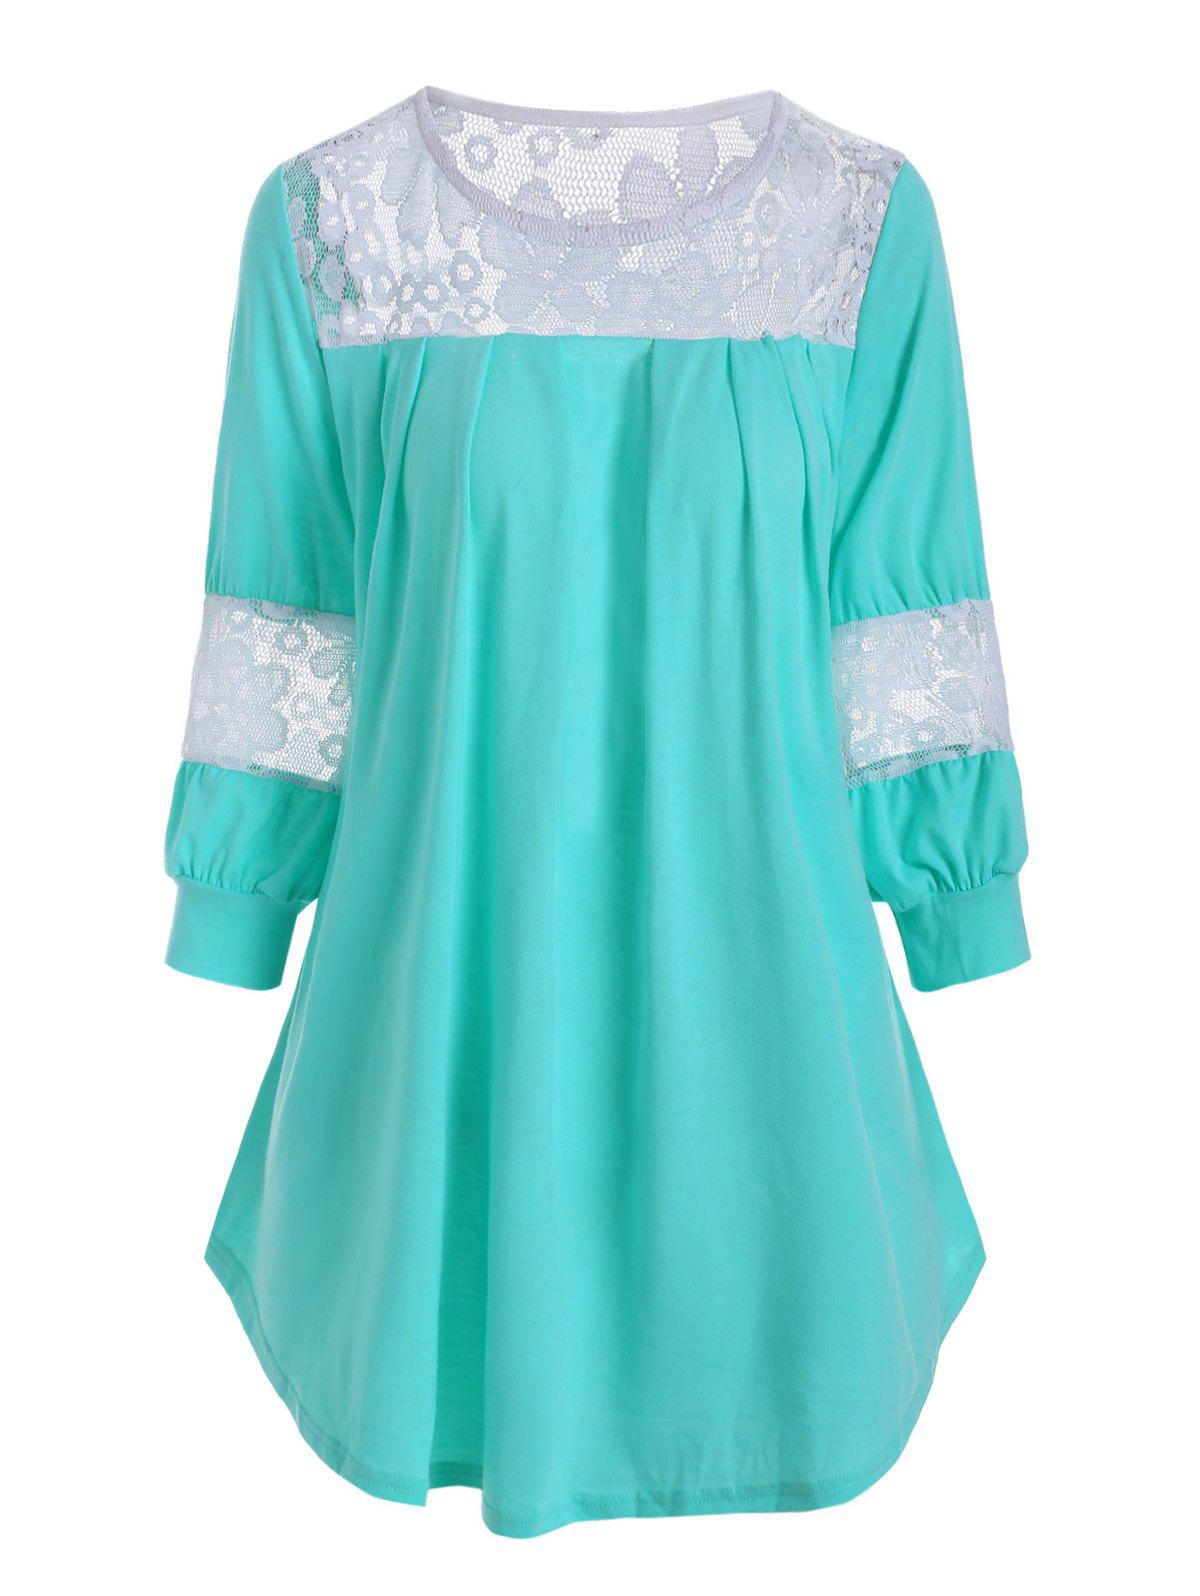 Plus Size Lace Insert Curved T Shirt - AQUAMARINE 2X